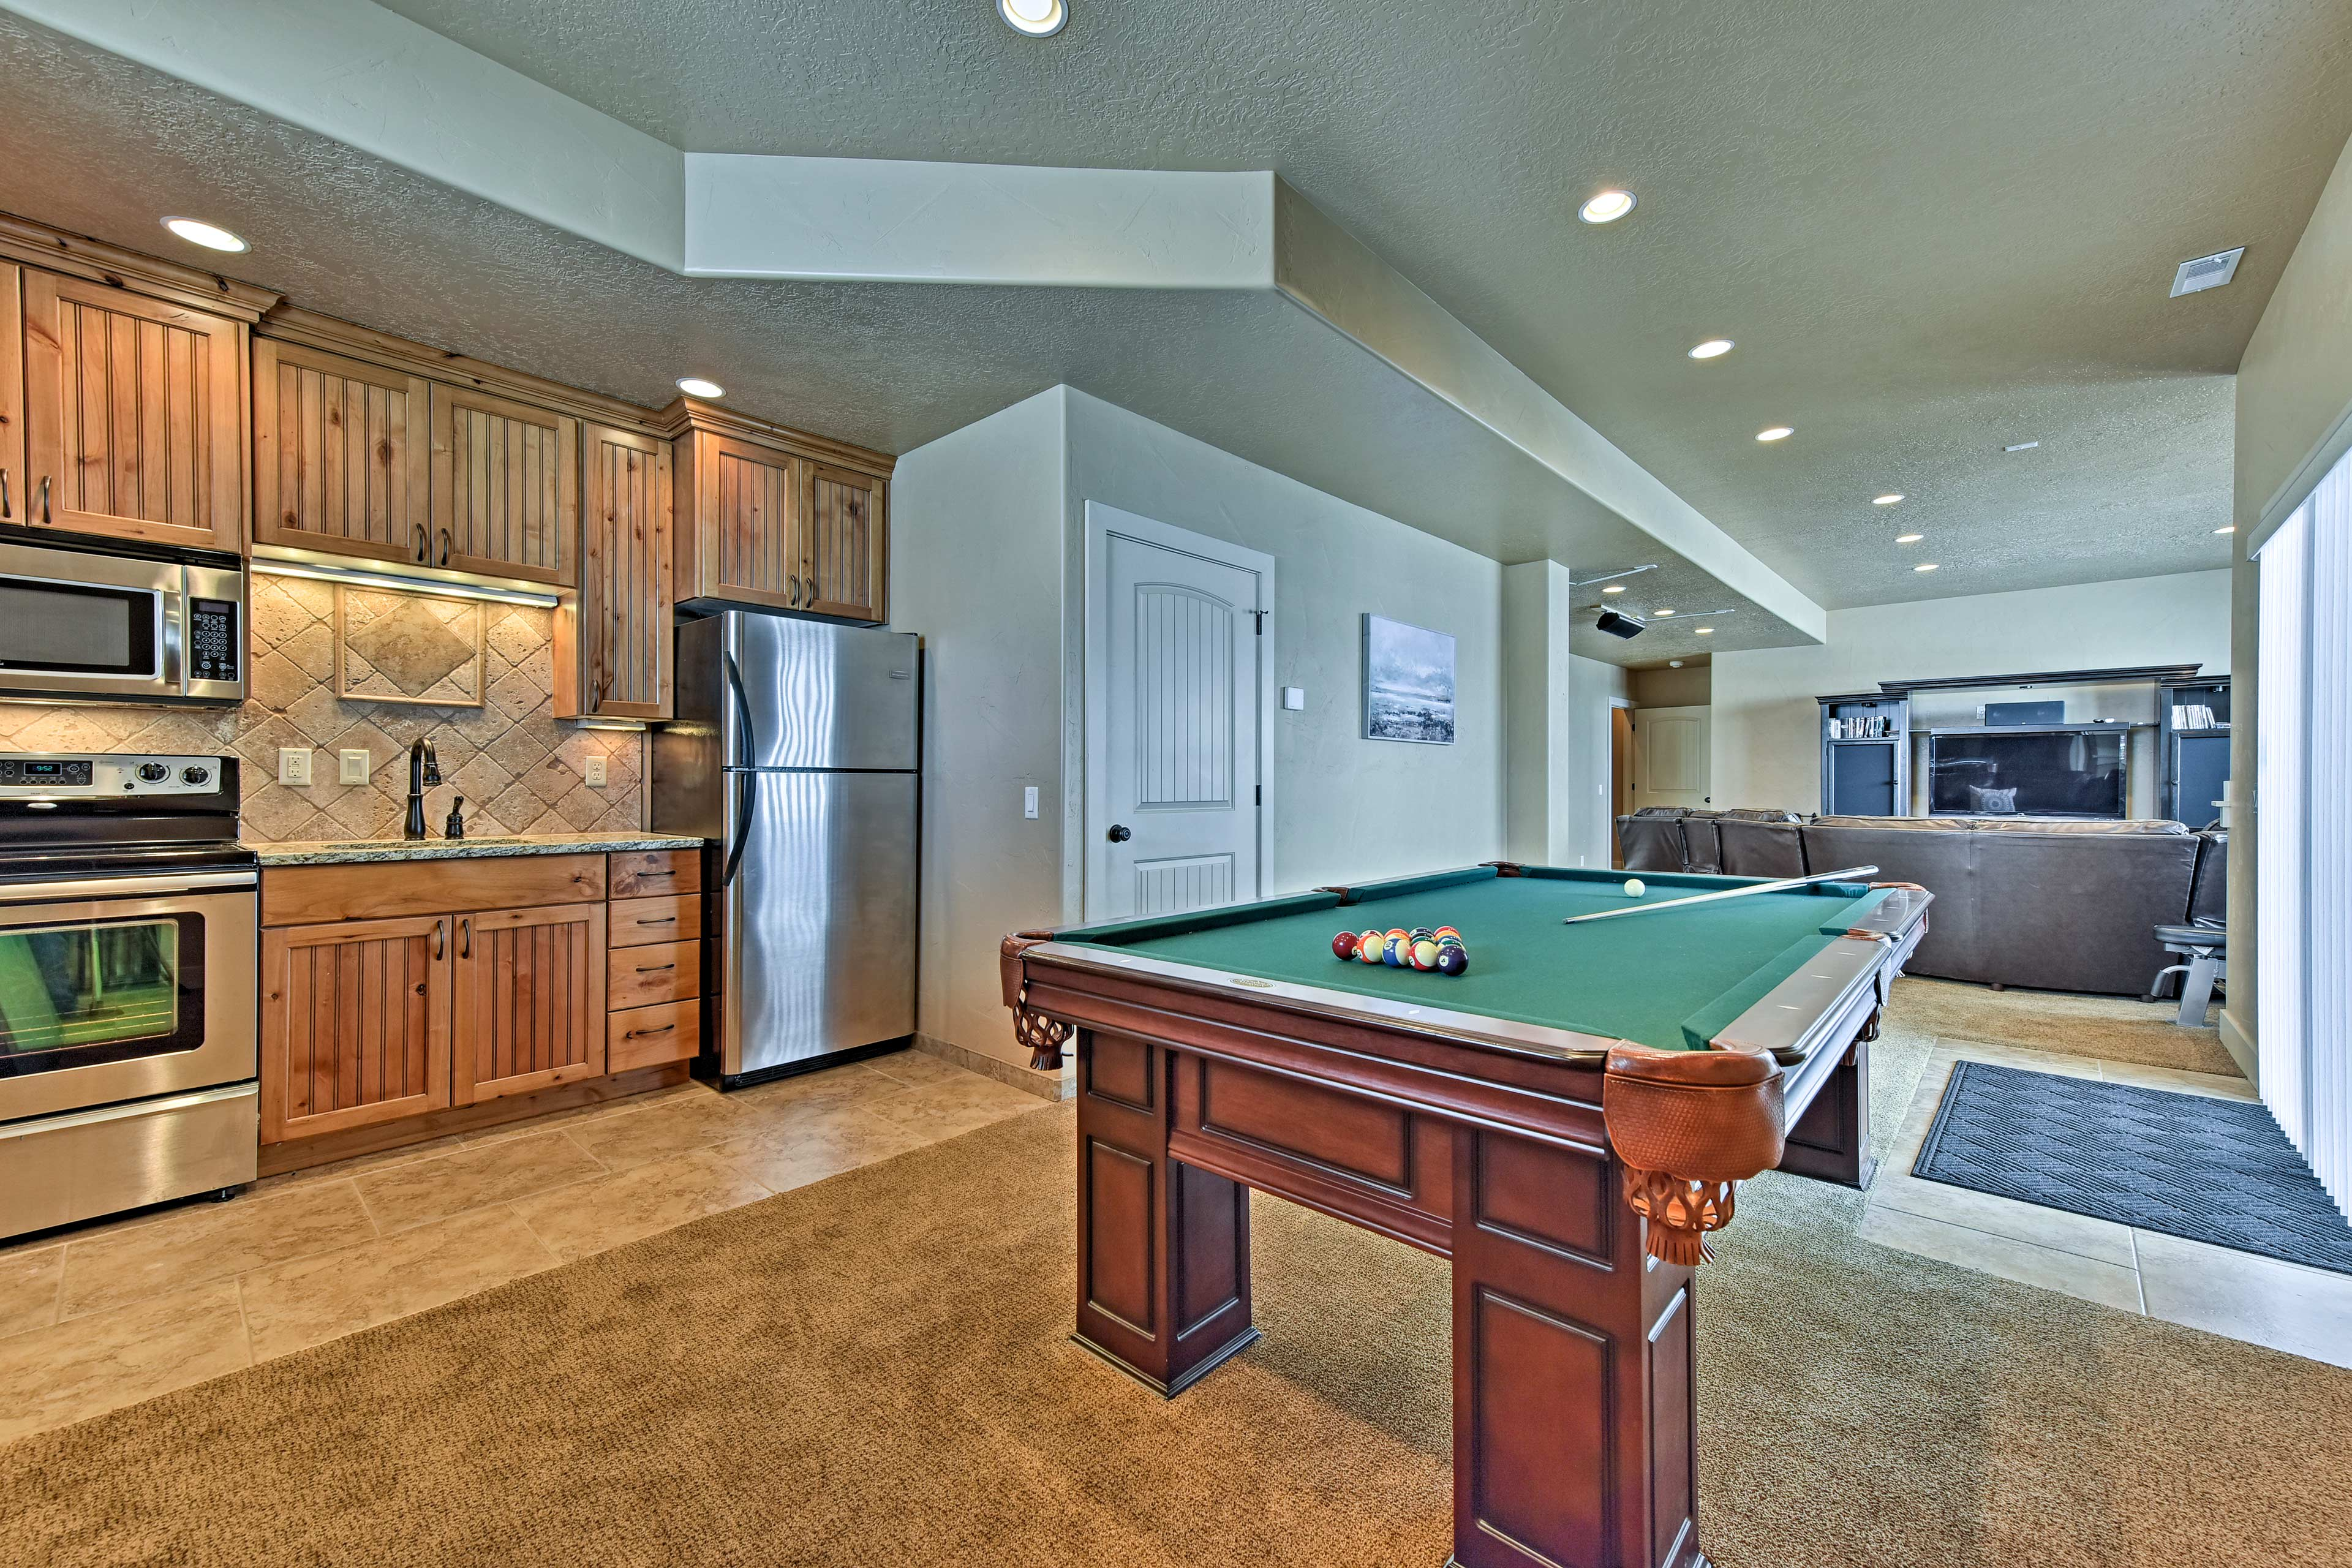 Host family game night around the pool table.